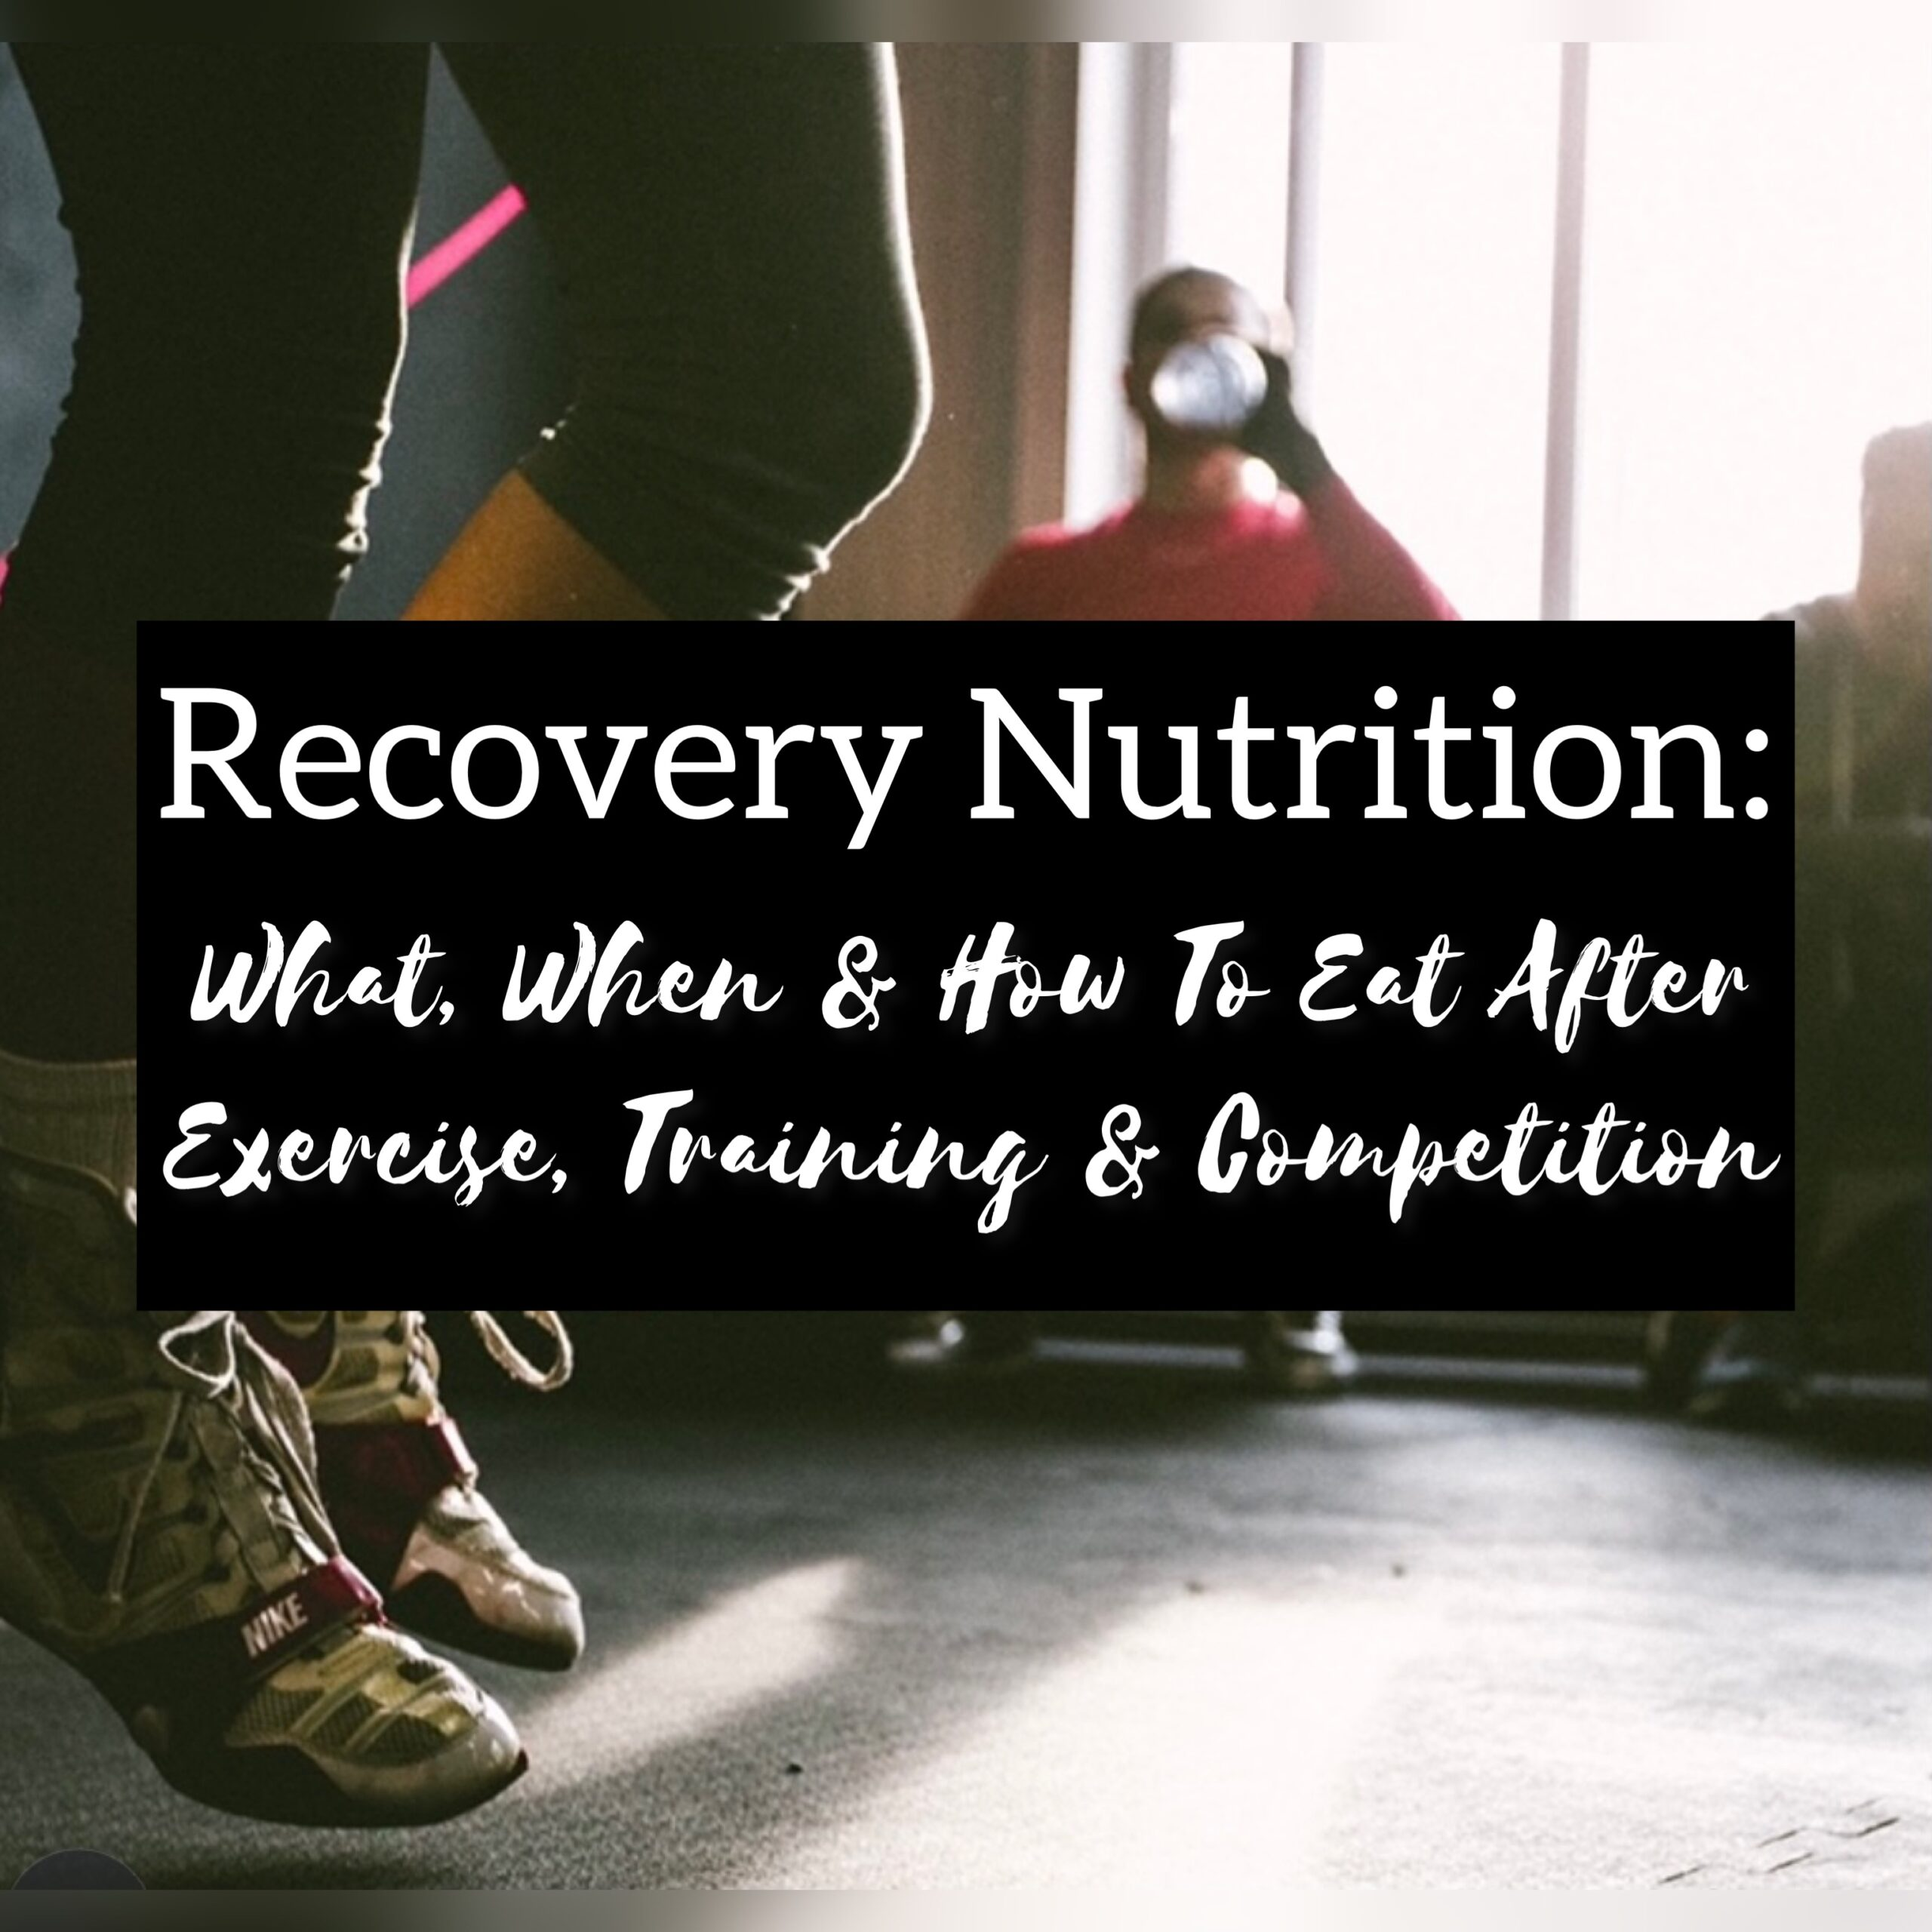 Recovery Nutrition – What, When, How And Why To Eat After Exercise, Training And Competition